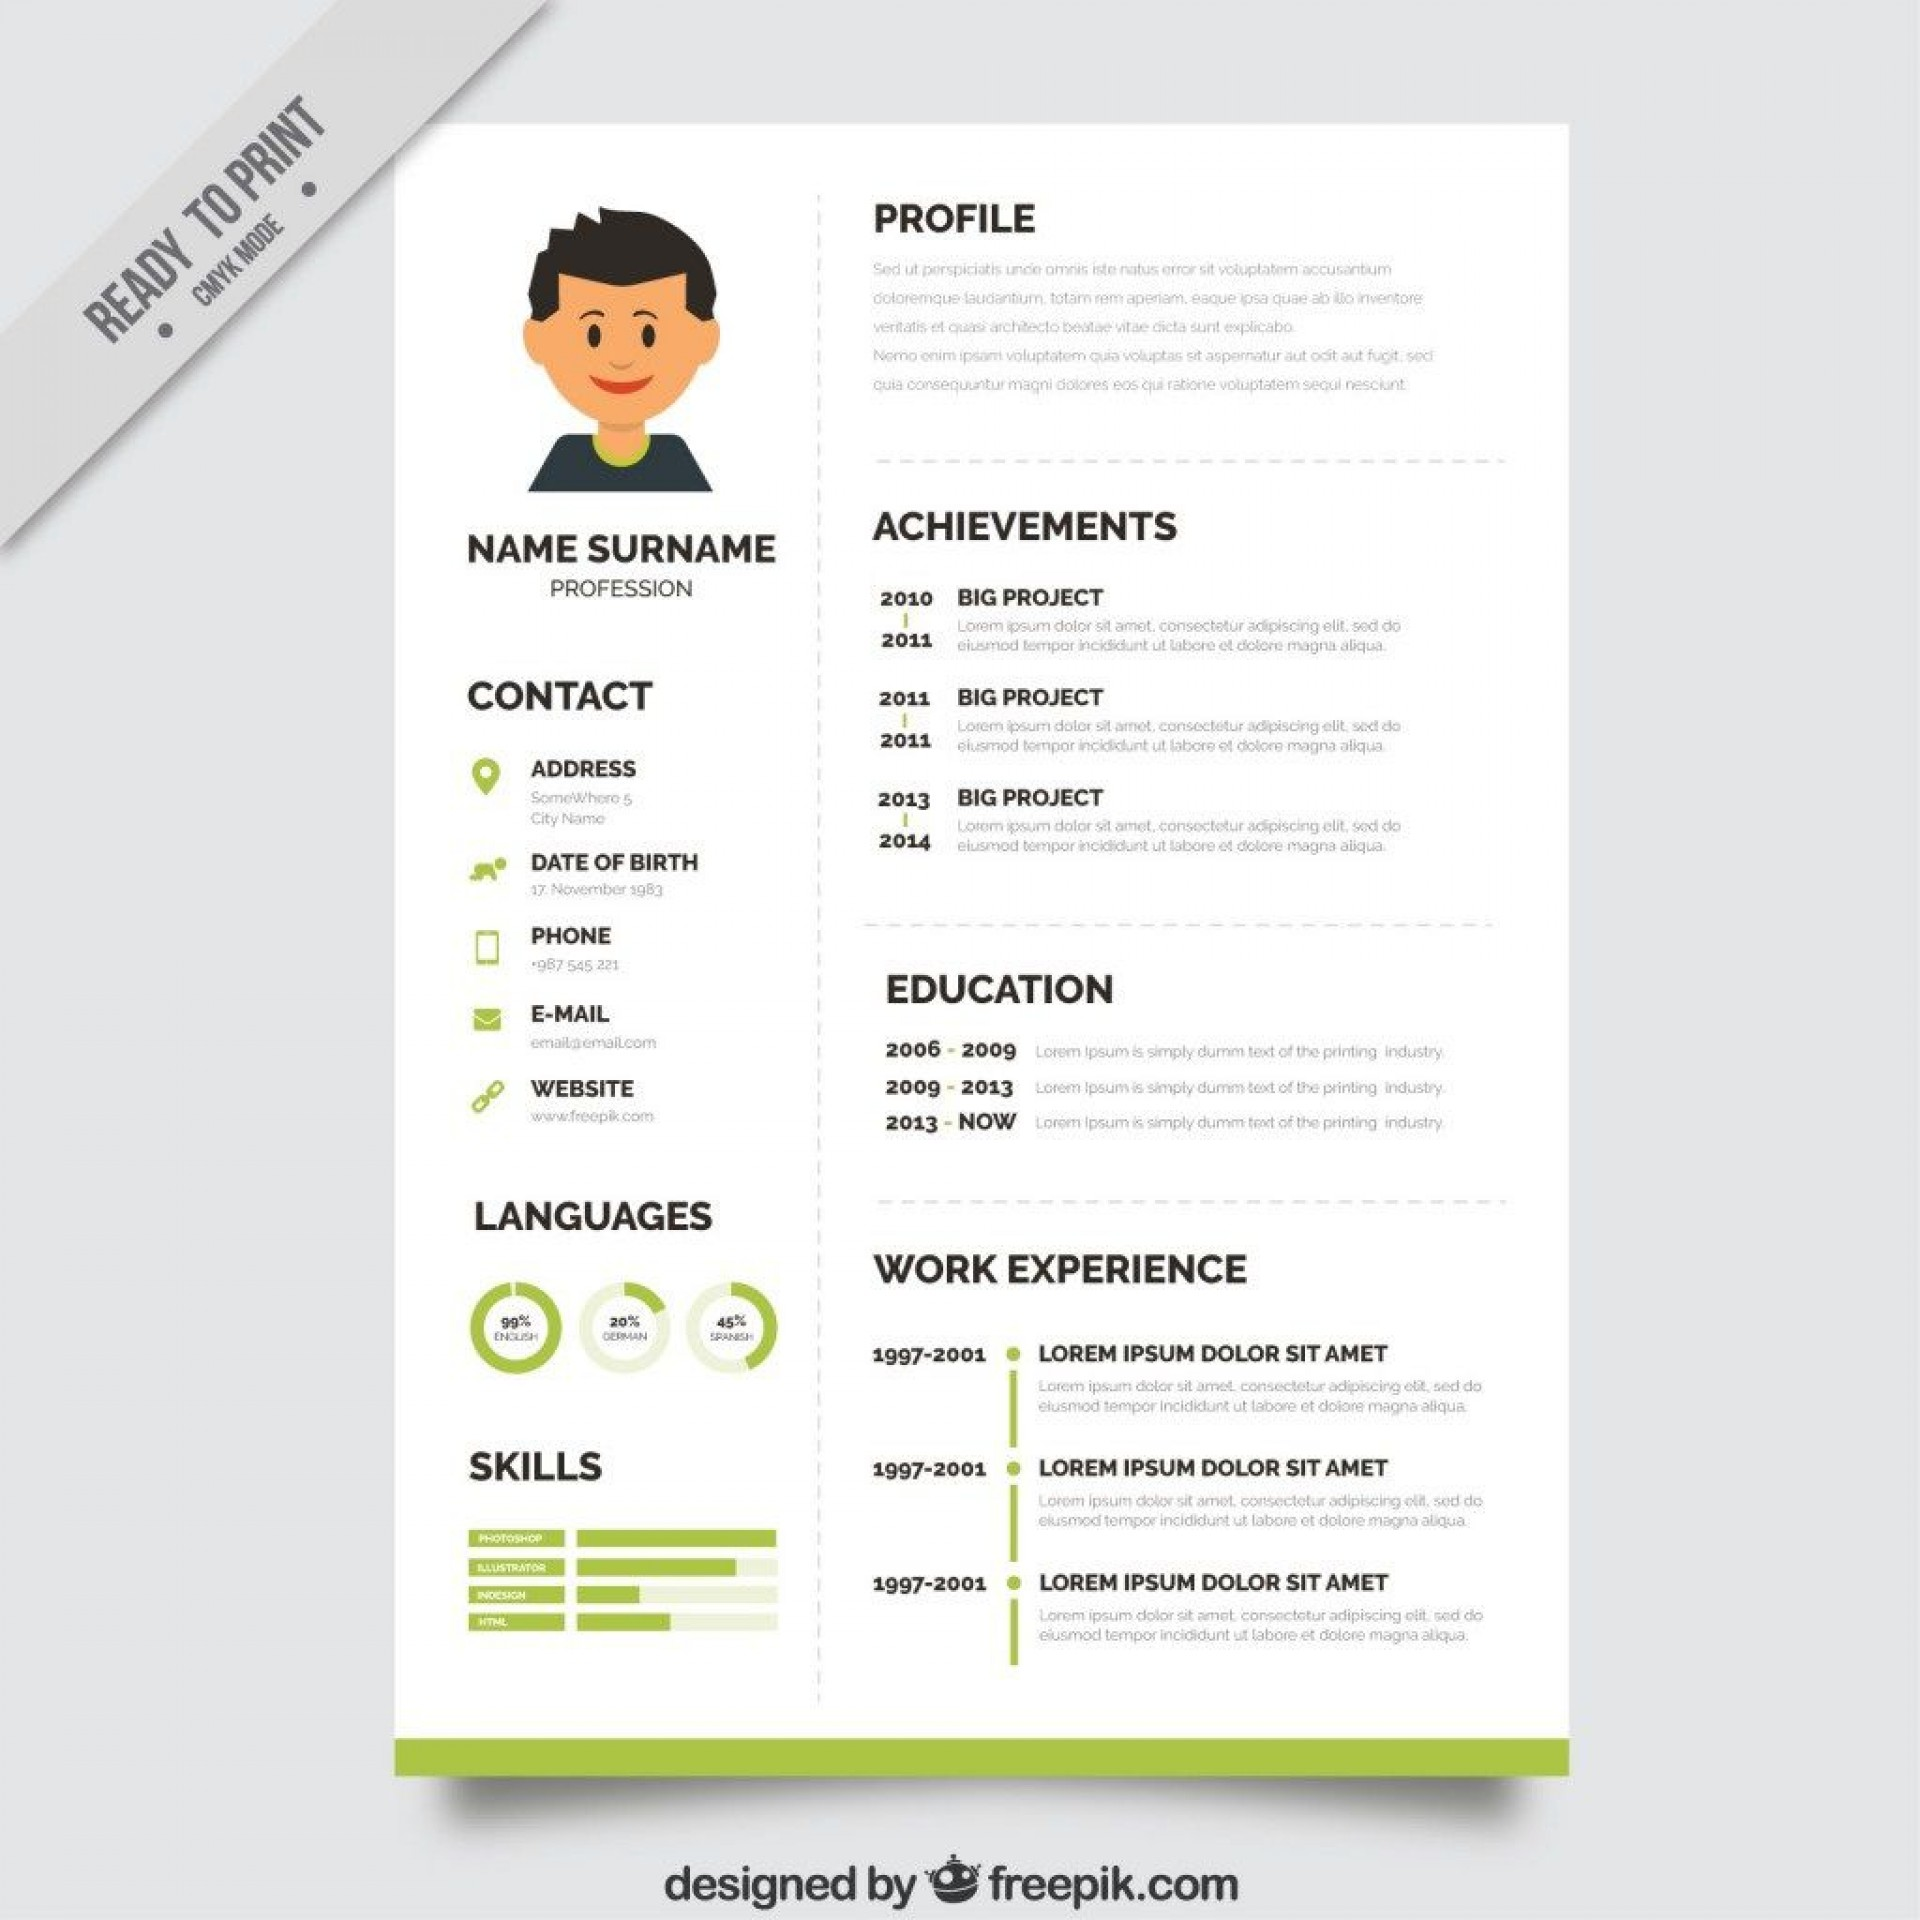 005 Stupendou Free Resume Template To Download Inspiration  Professional Format In M Word 2007 For Civil Engineer1920